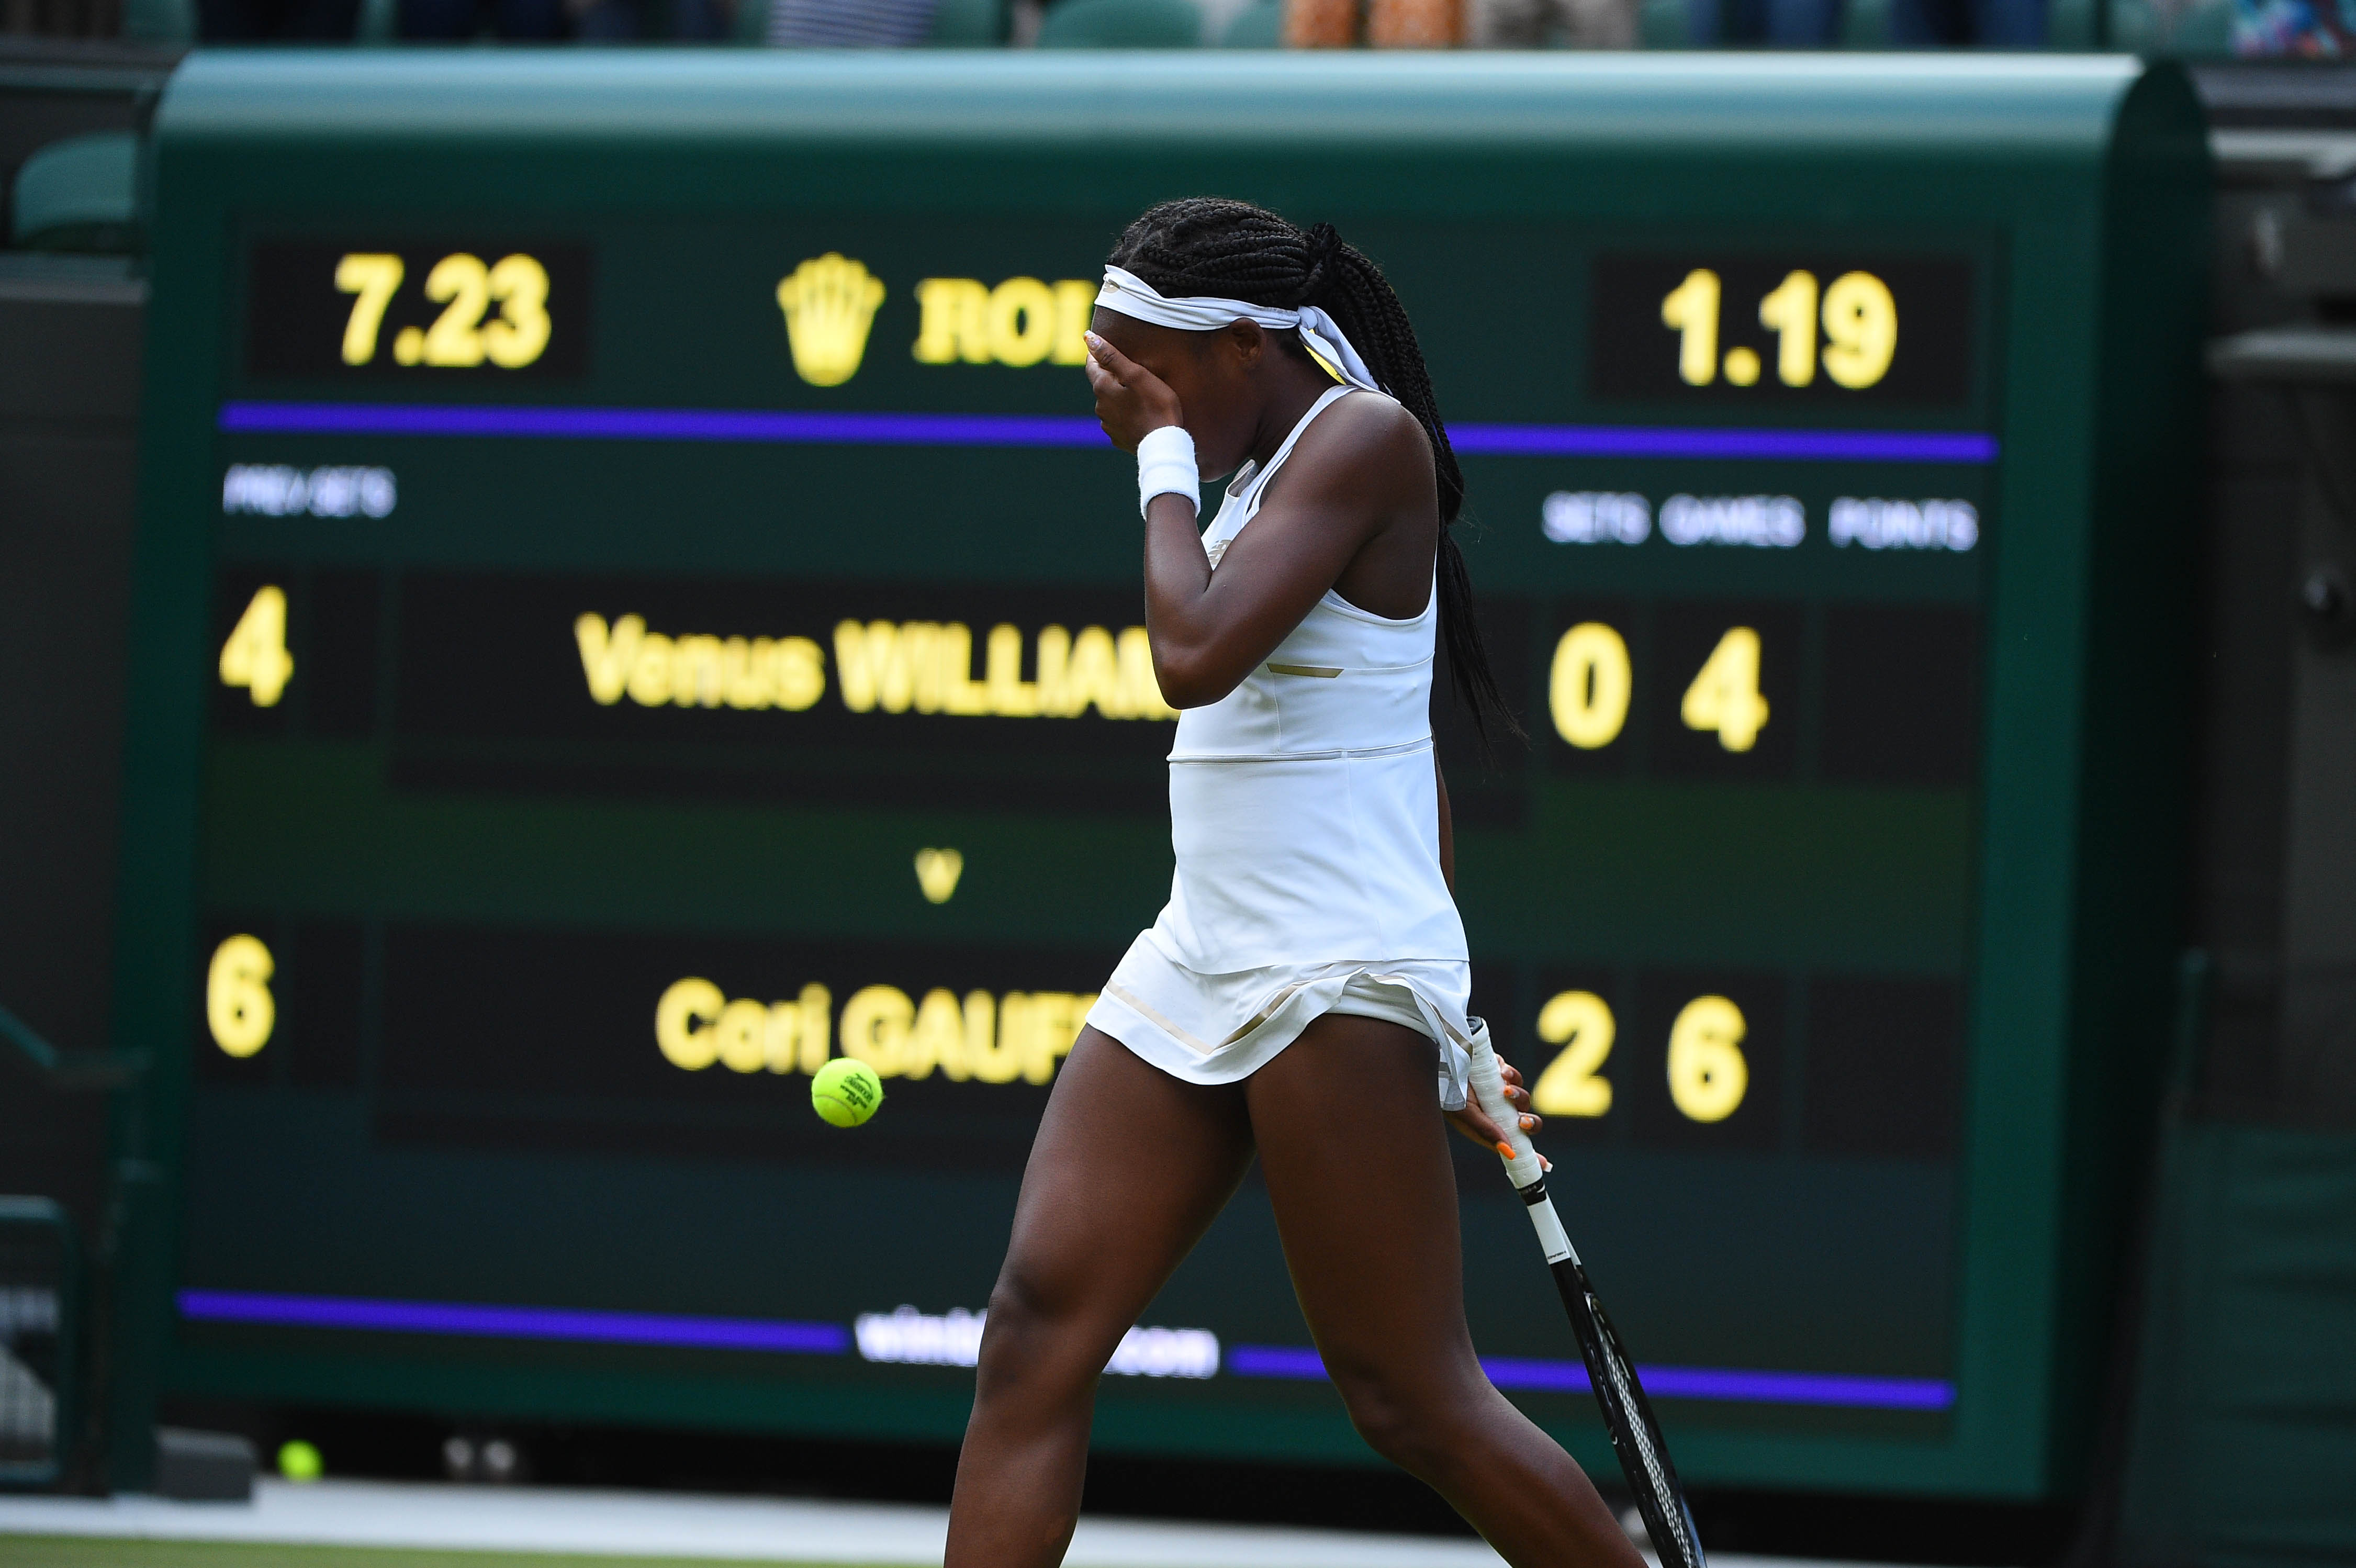 Cori Gauff crying in front of the score board after defeating Venus Williams at Wimbledon 2019